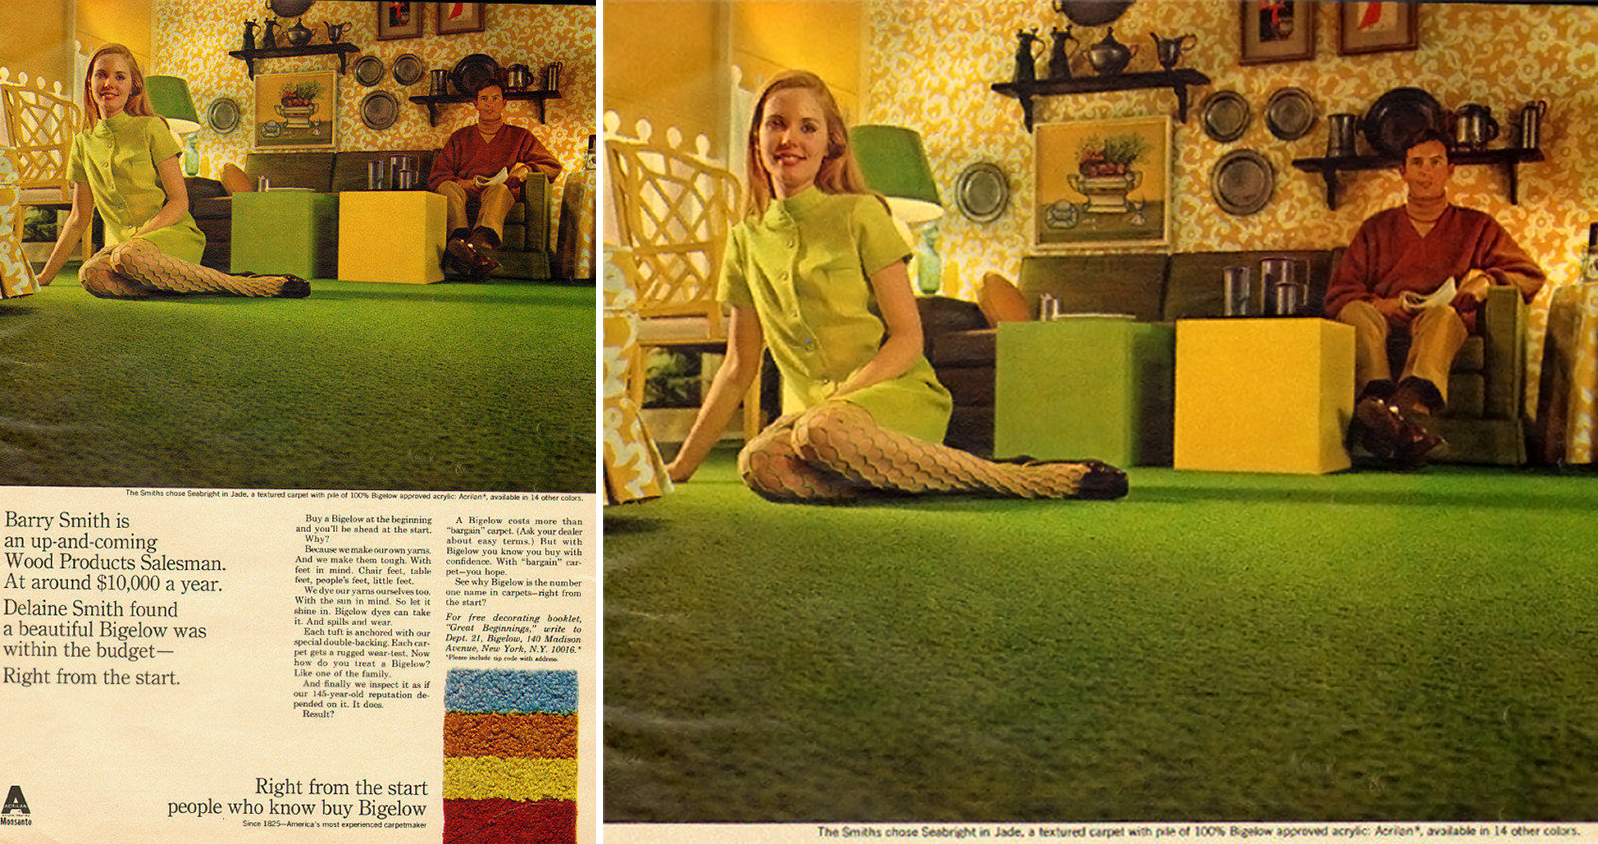 Selling Harvest Gold Shag Carpet Ads From The 1960s 1970s